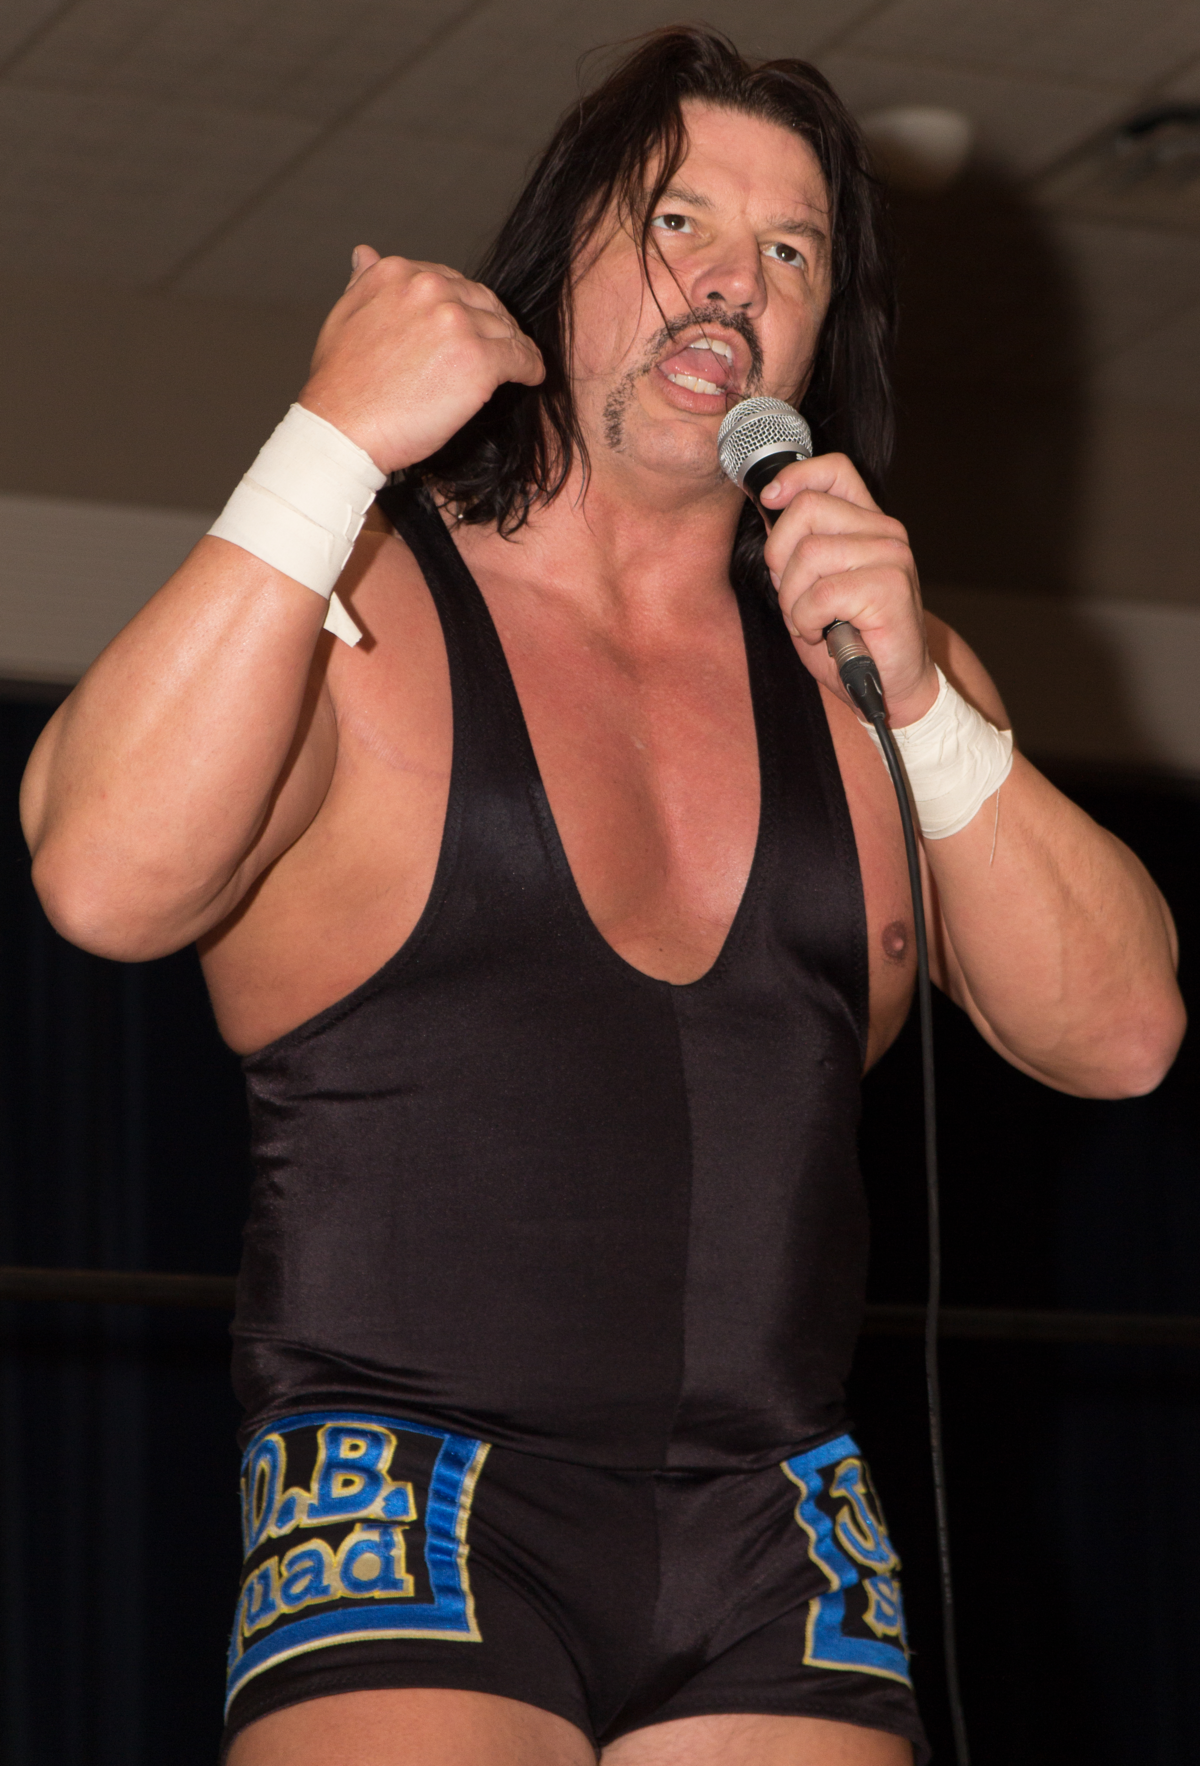 Biggest cock in pro wrestling